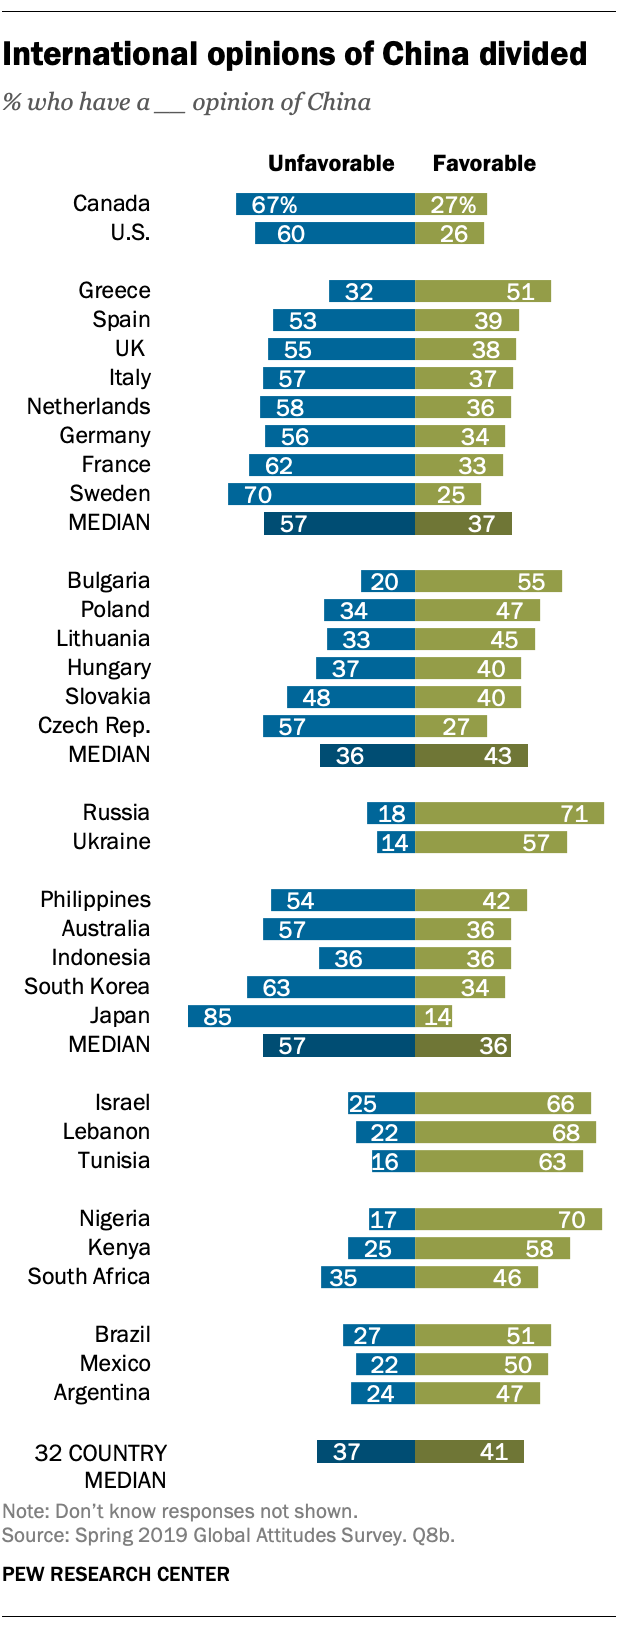 International opinions of China divided